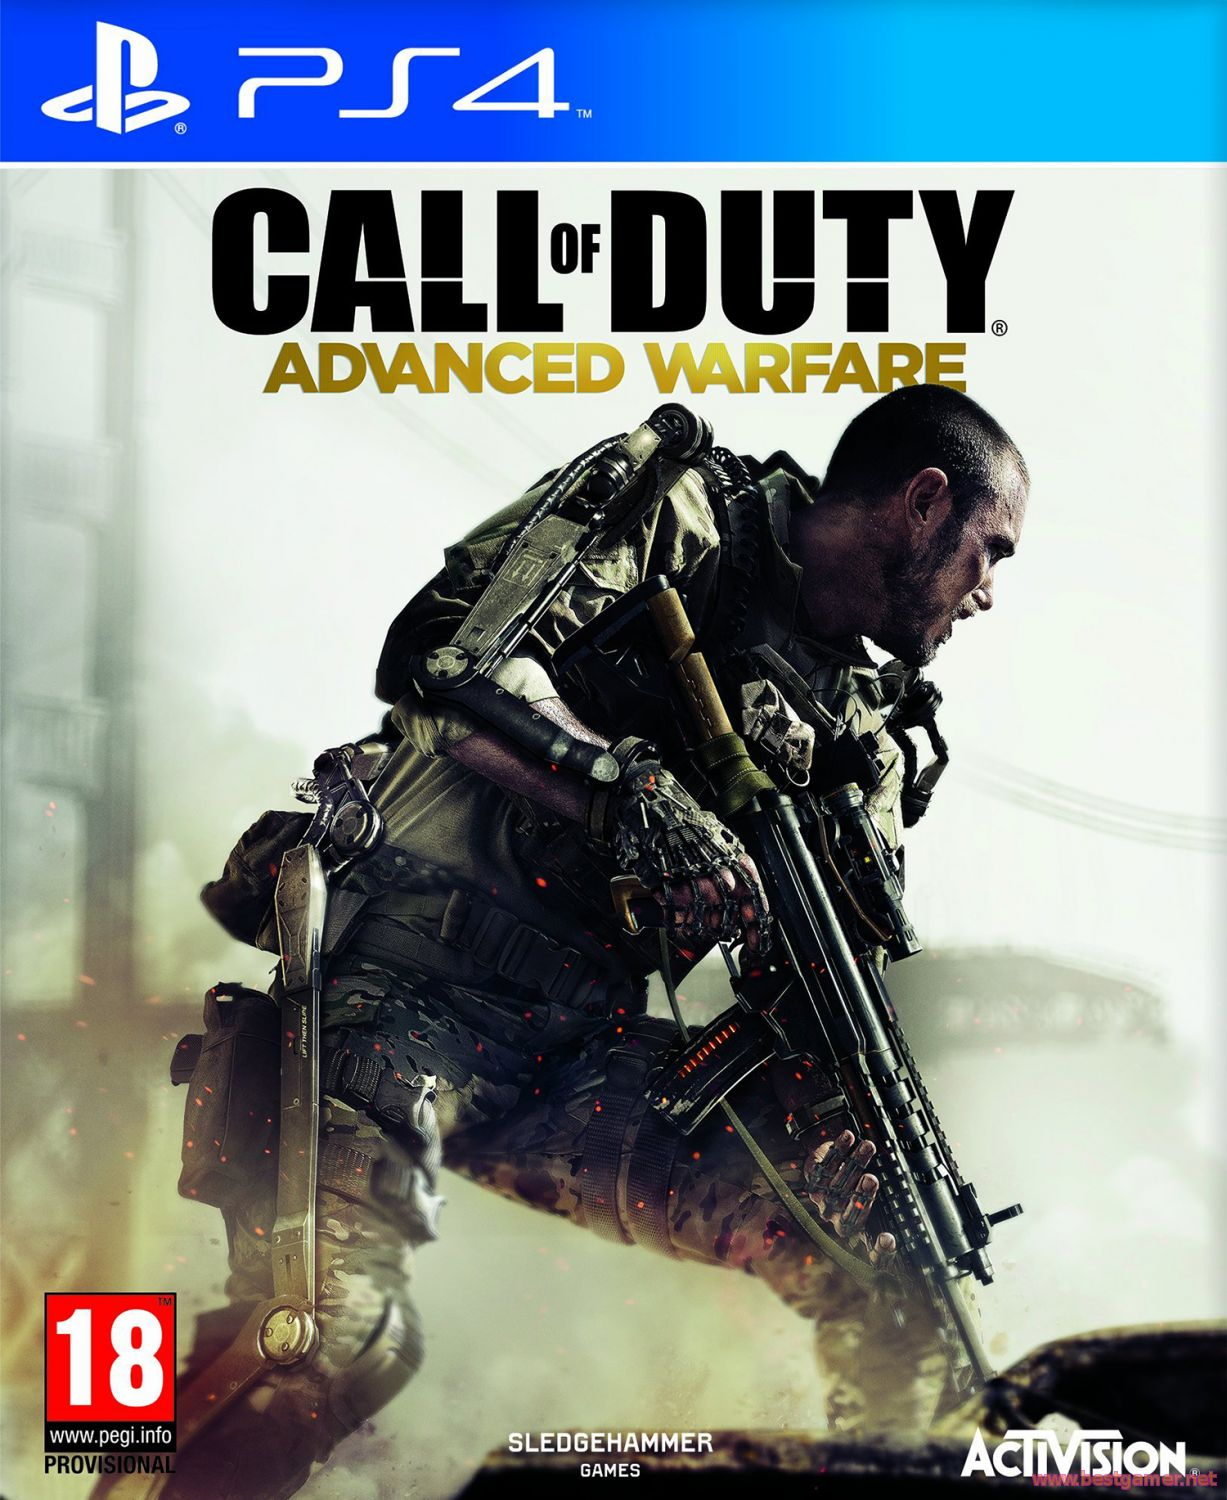 Call of Duty: Advanced Warfare(трофеи) часть 2